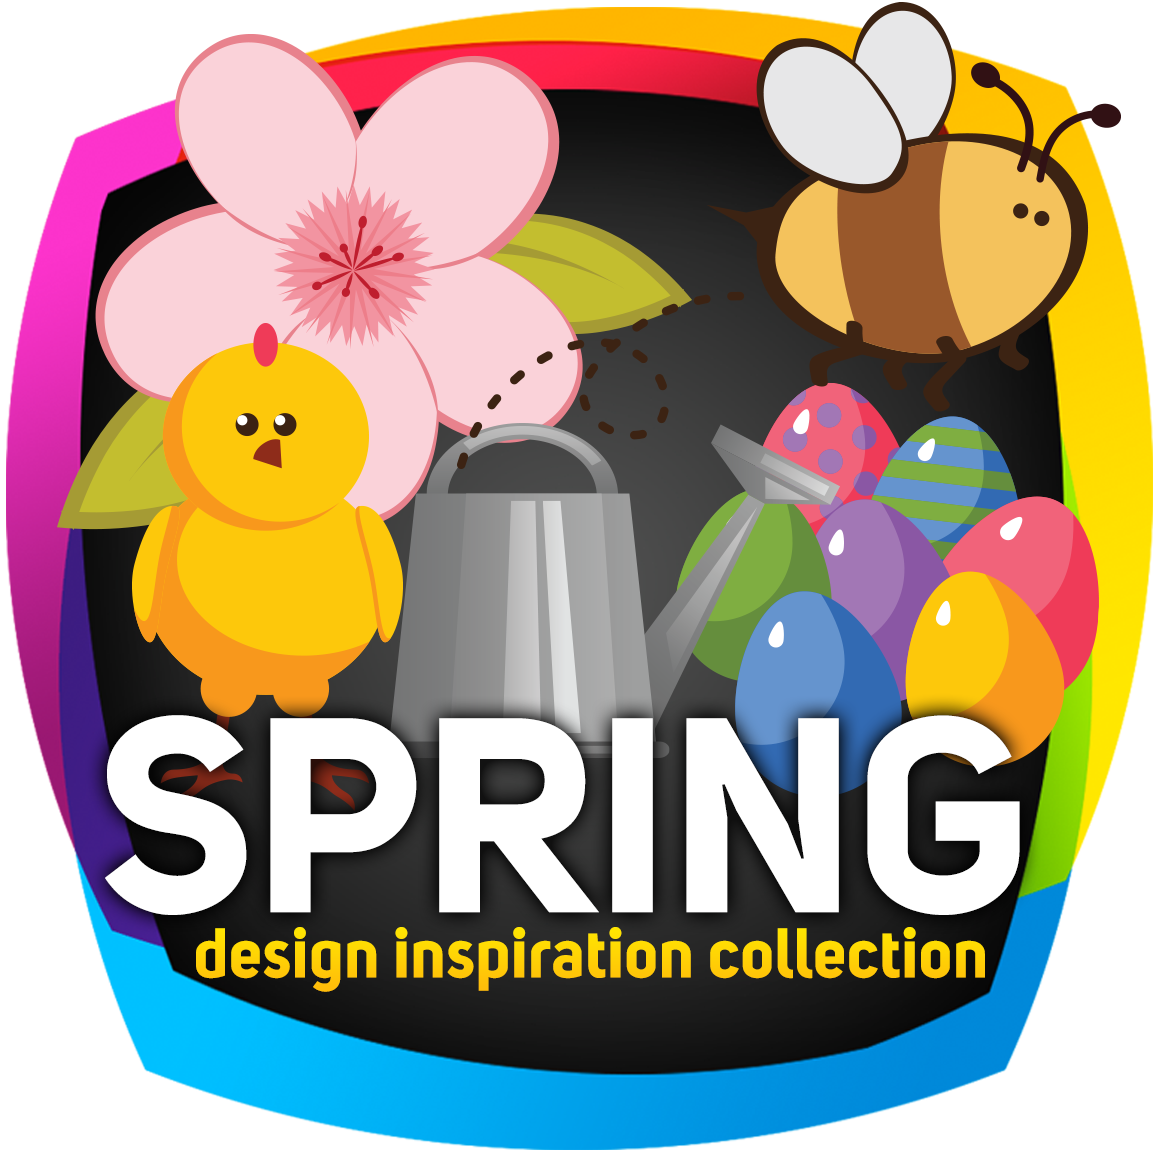 Website clipart software design. Spring inspiration collection selling